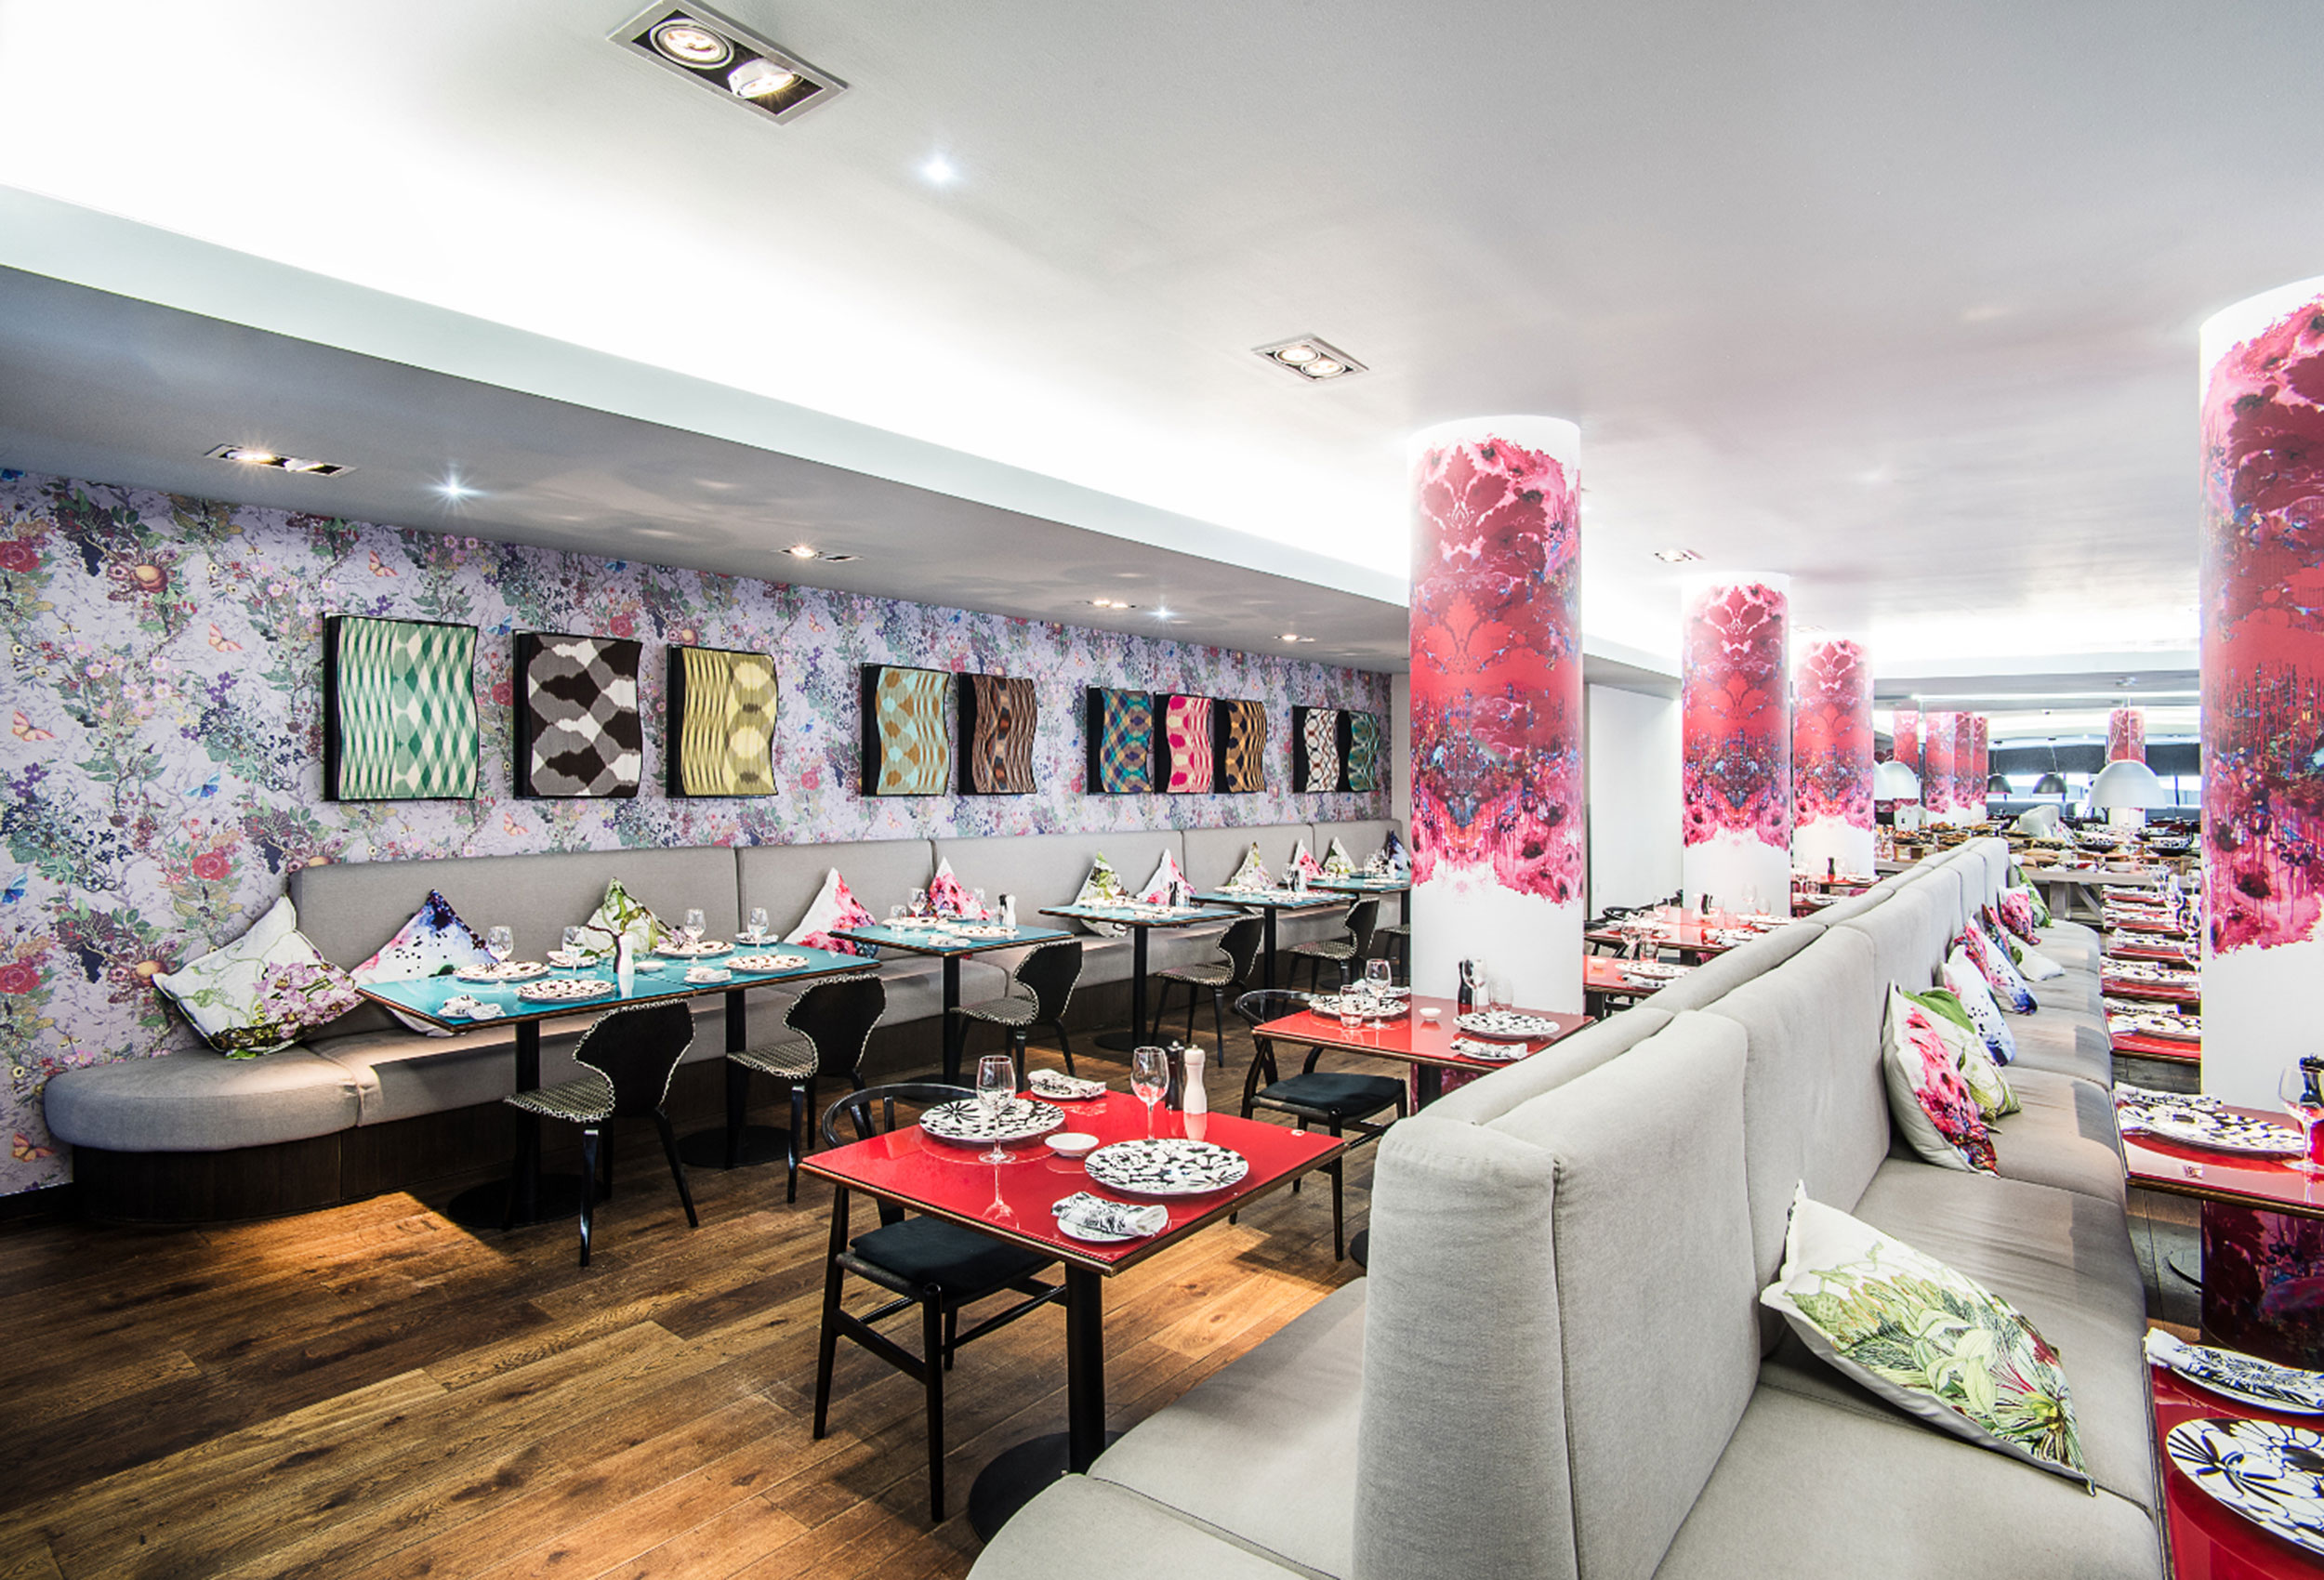 The very colourful tables, pillars and walls of Cucina restaurant, G&V Royal Mile Hotel, Edinburgh